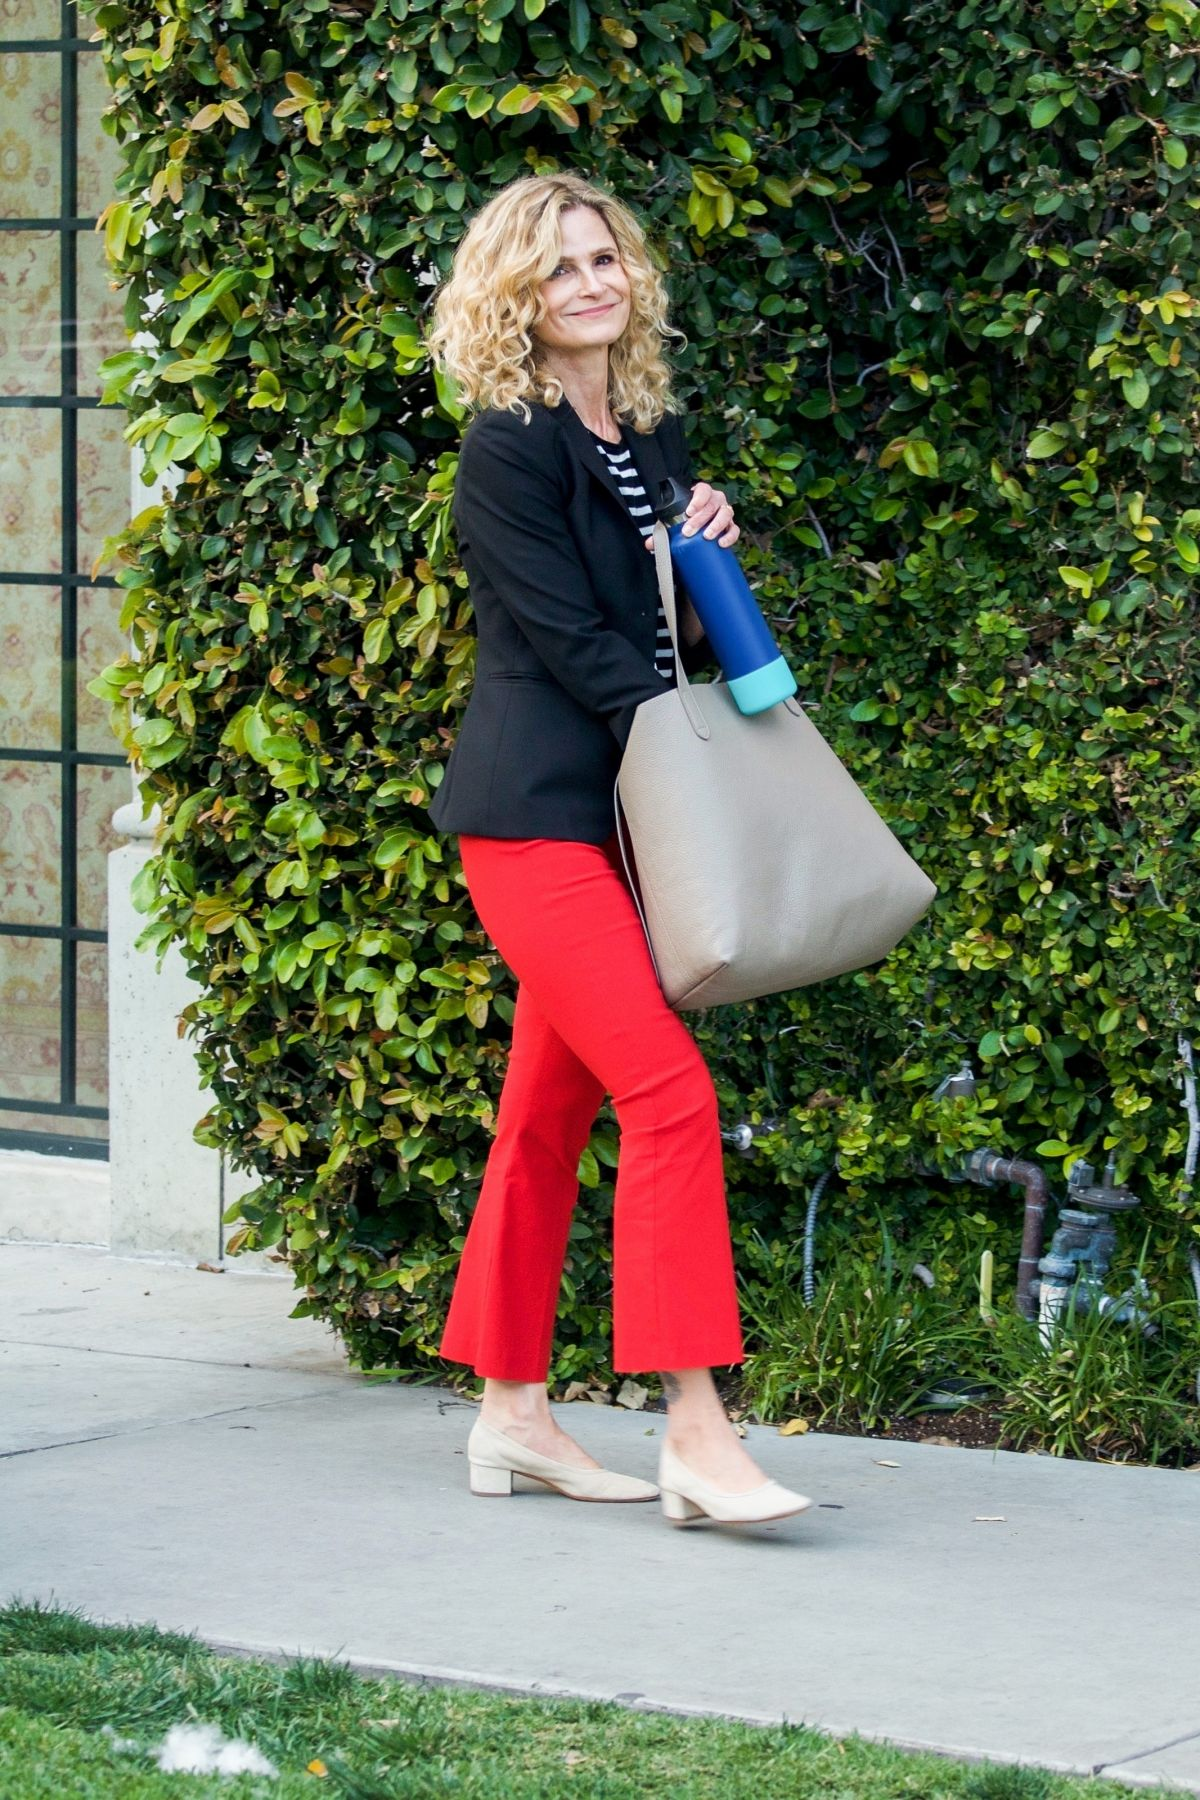 KYRA SEDGWICK Out Shopping in Los Angeles 04052019